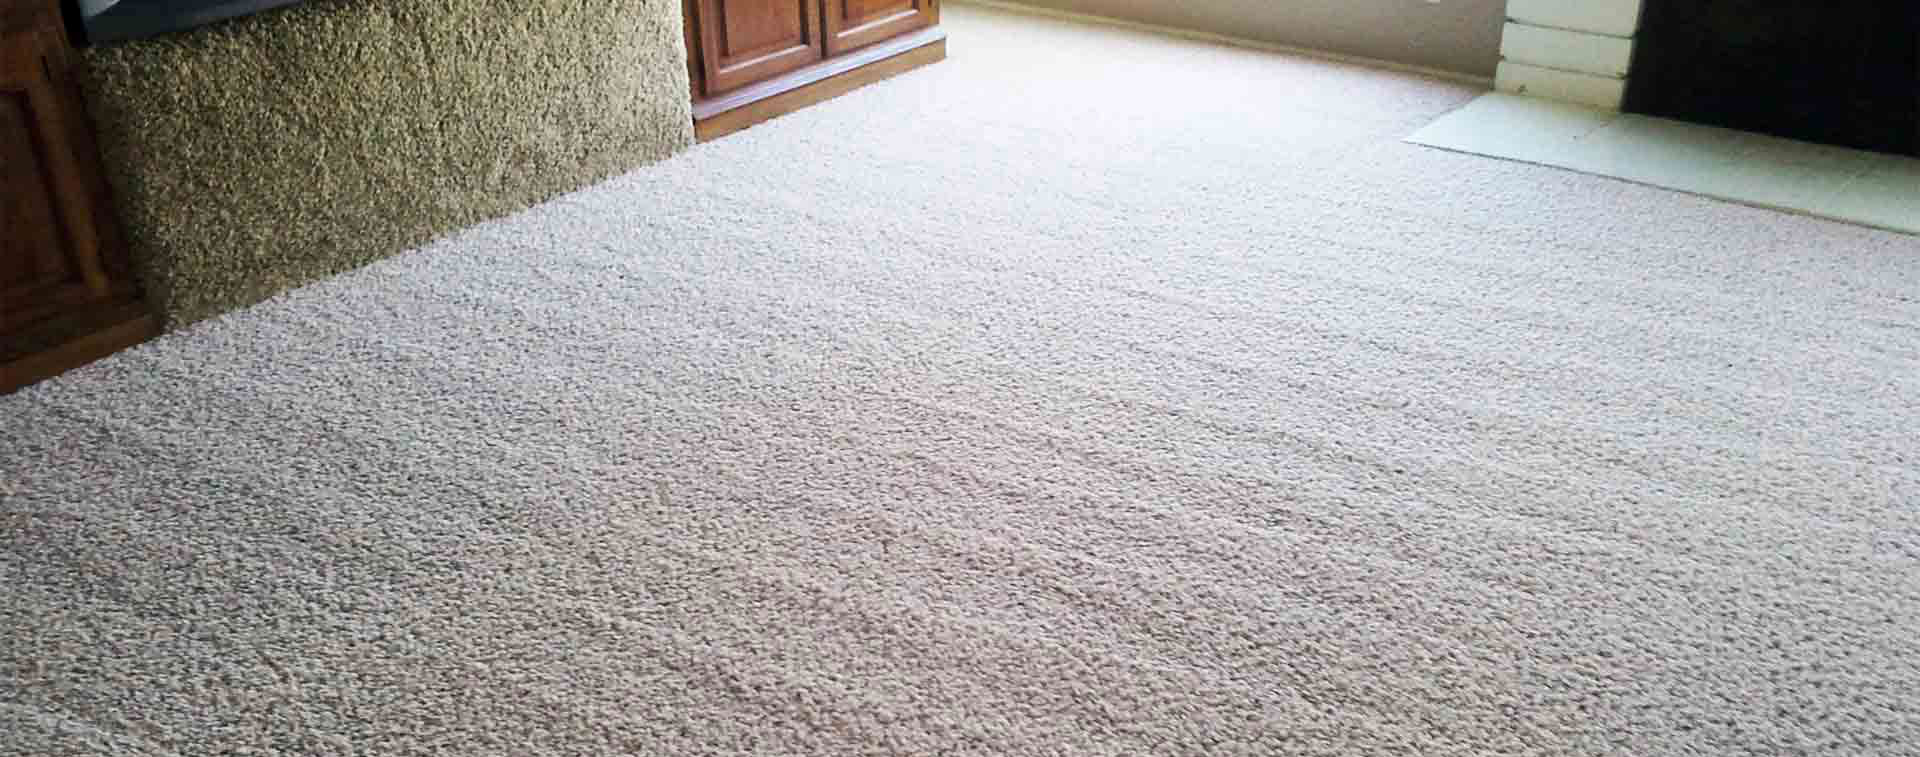 Carpet Cleaning Beaumont Hills